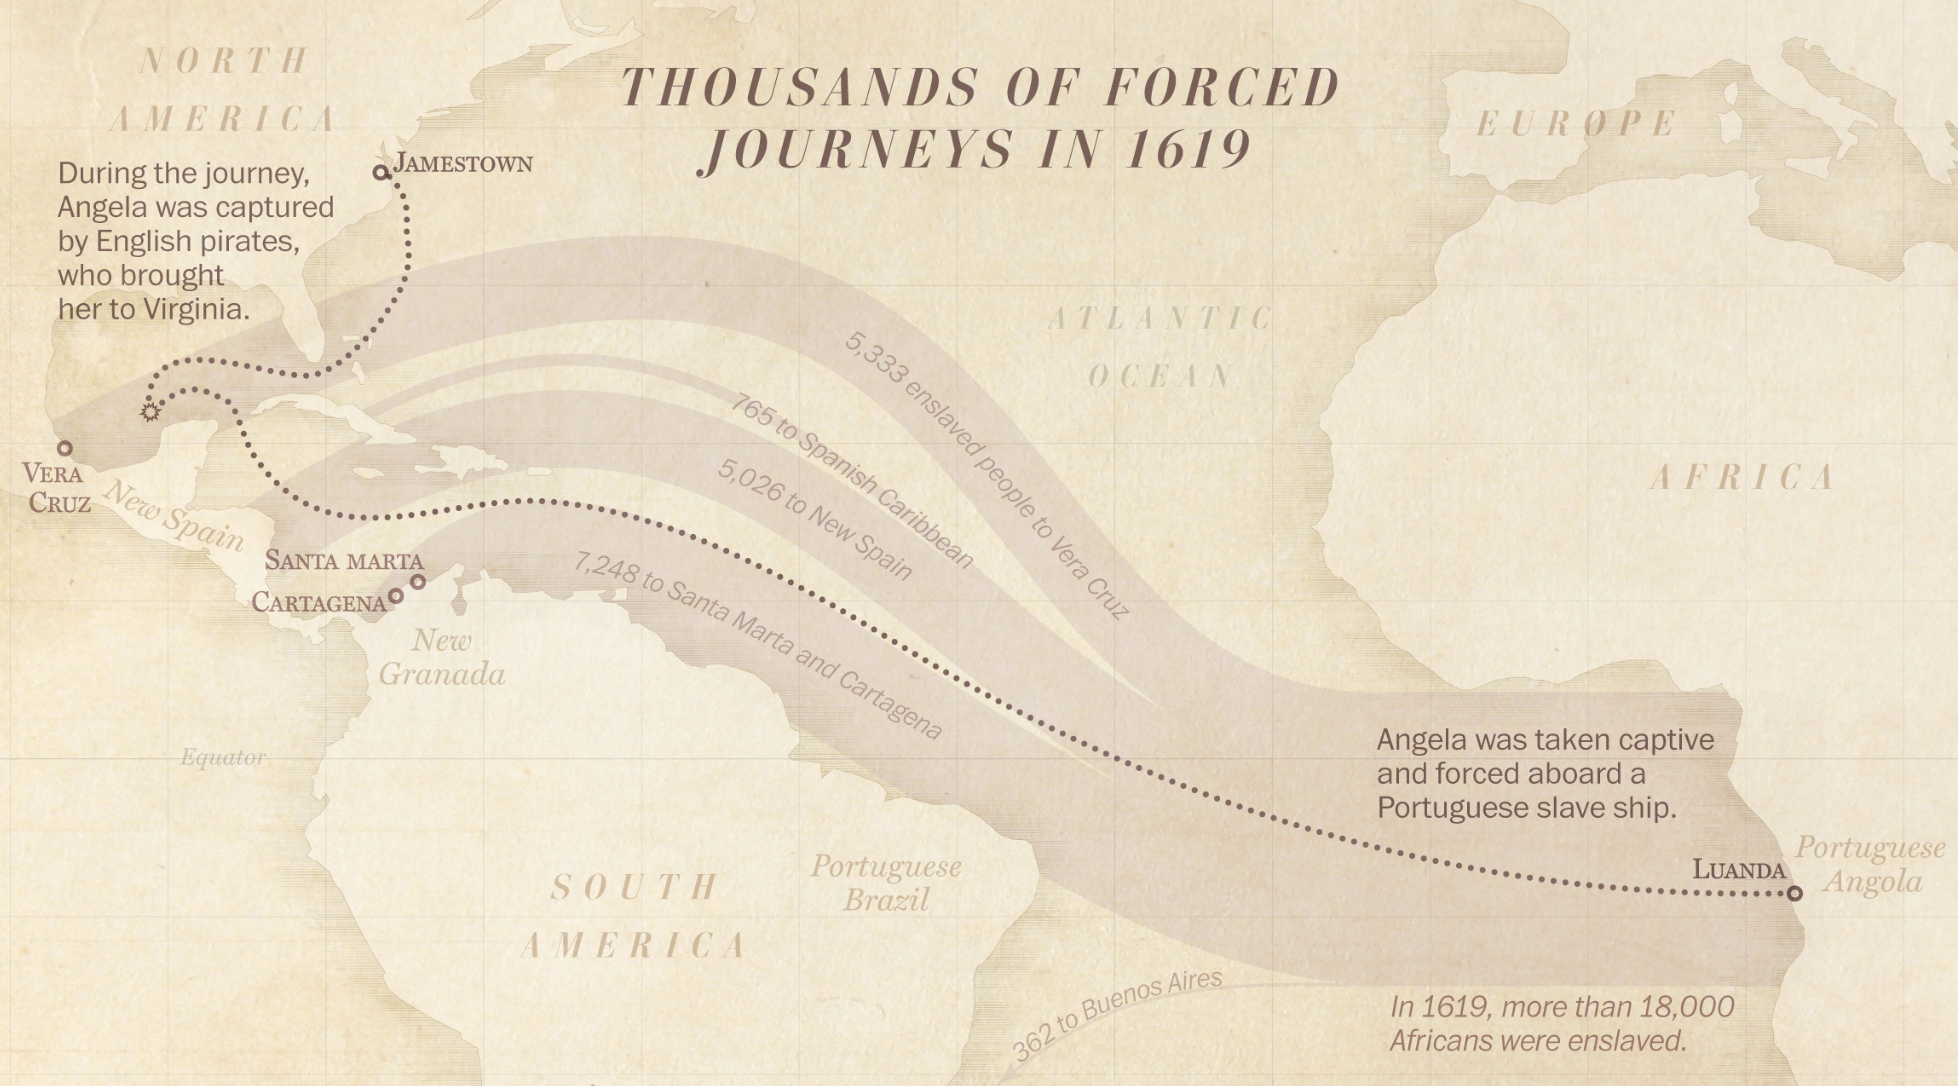 Too many people took similar routes to the New World.